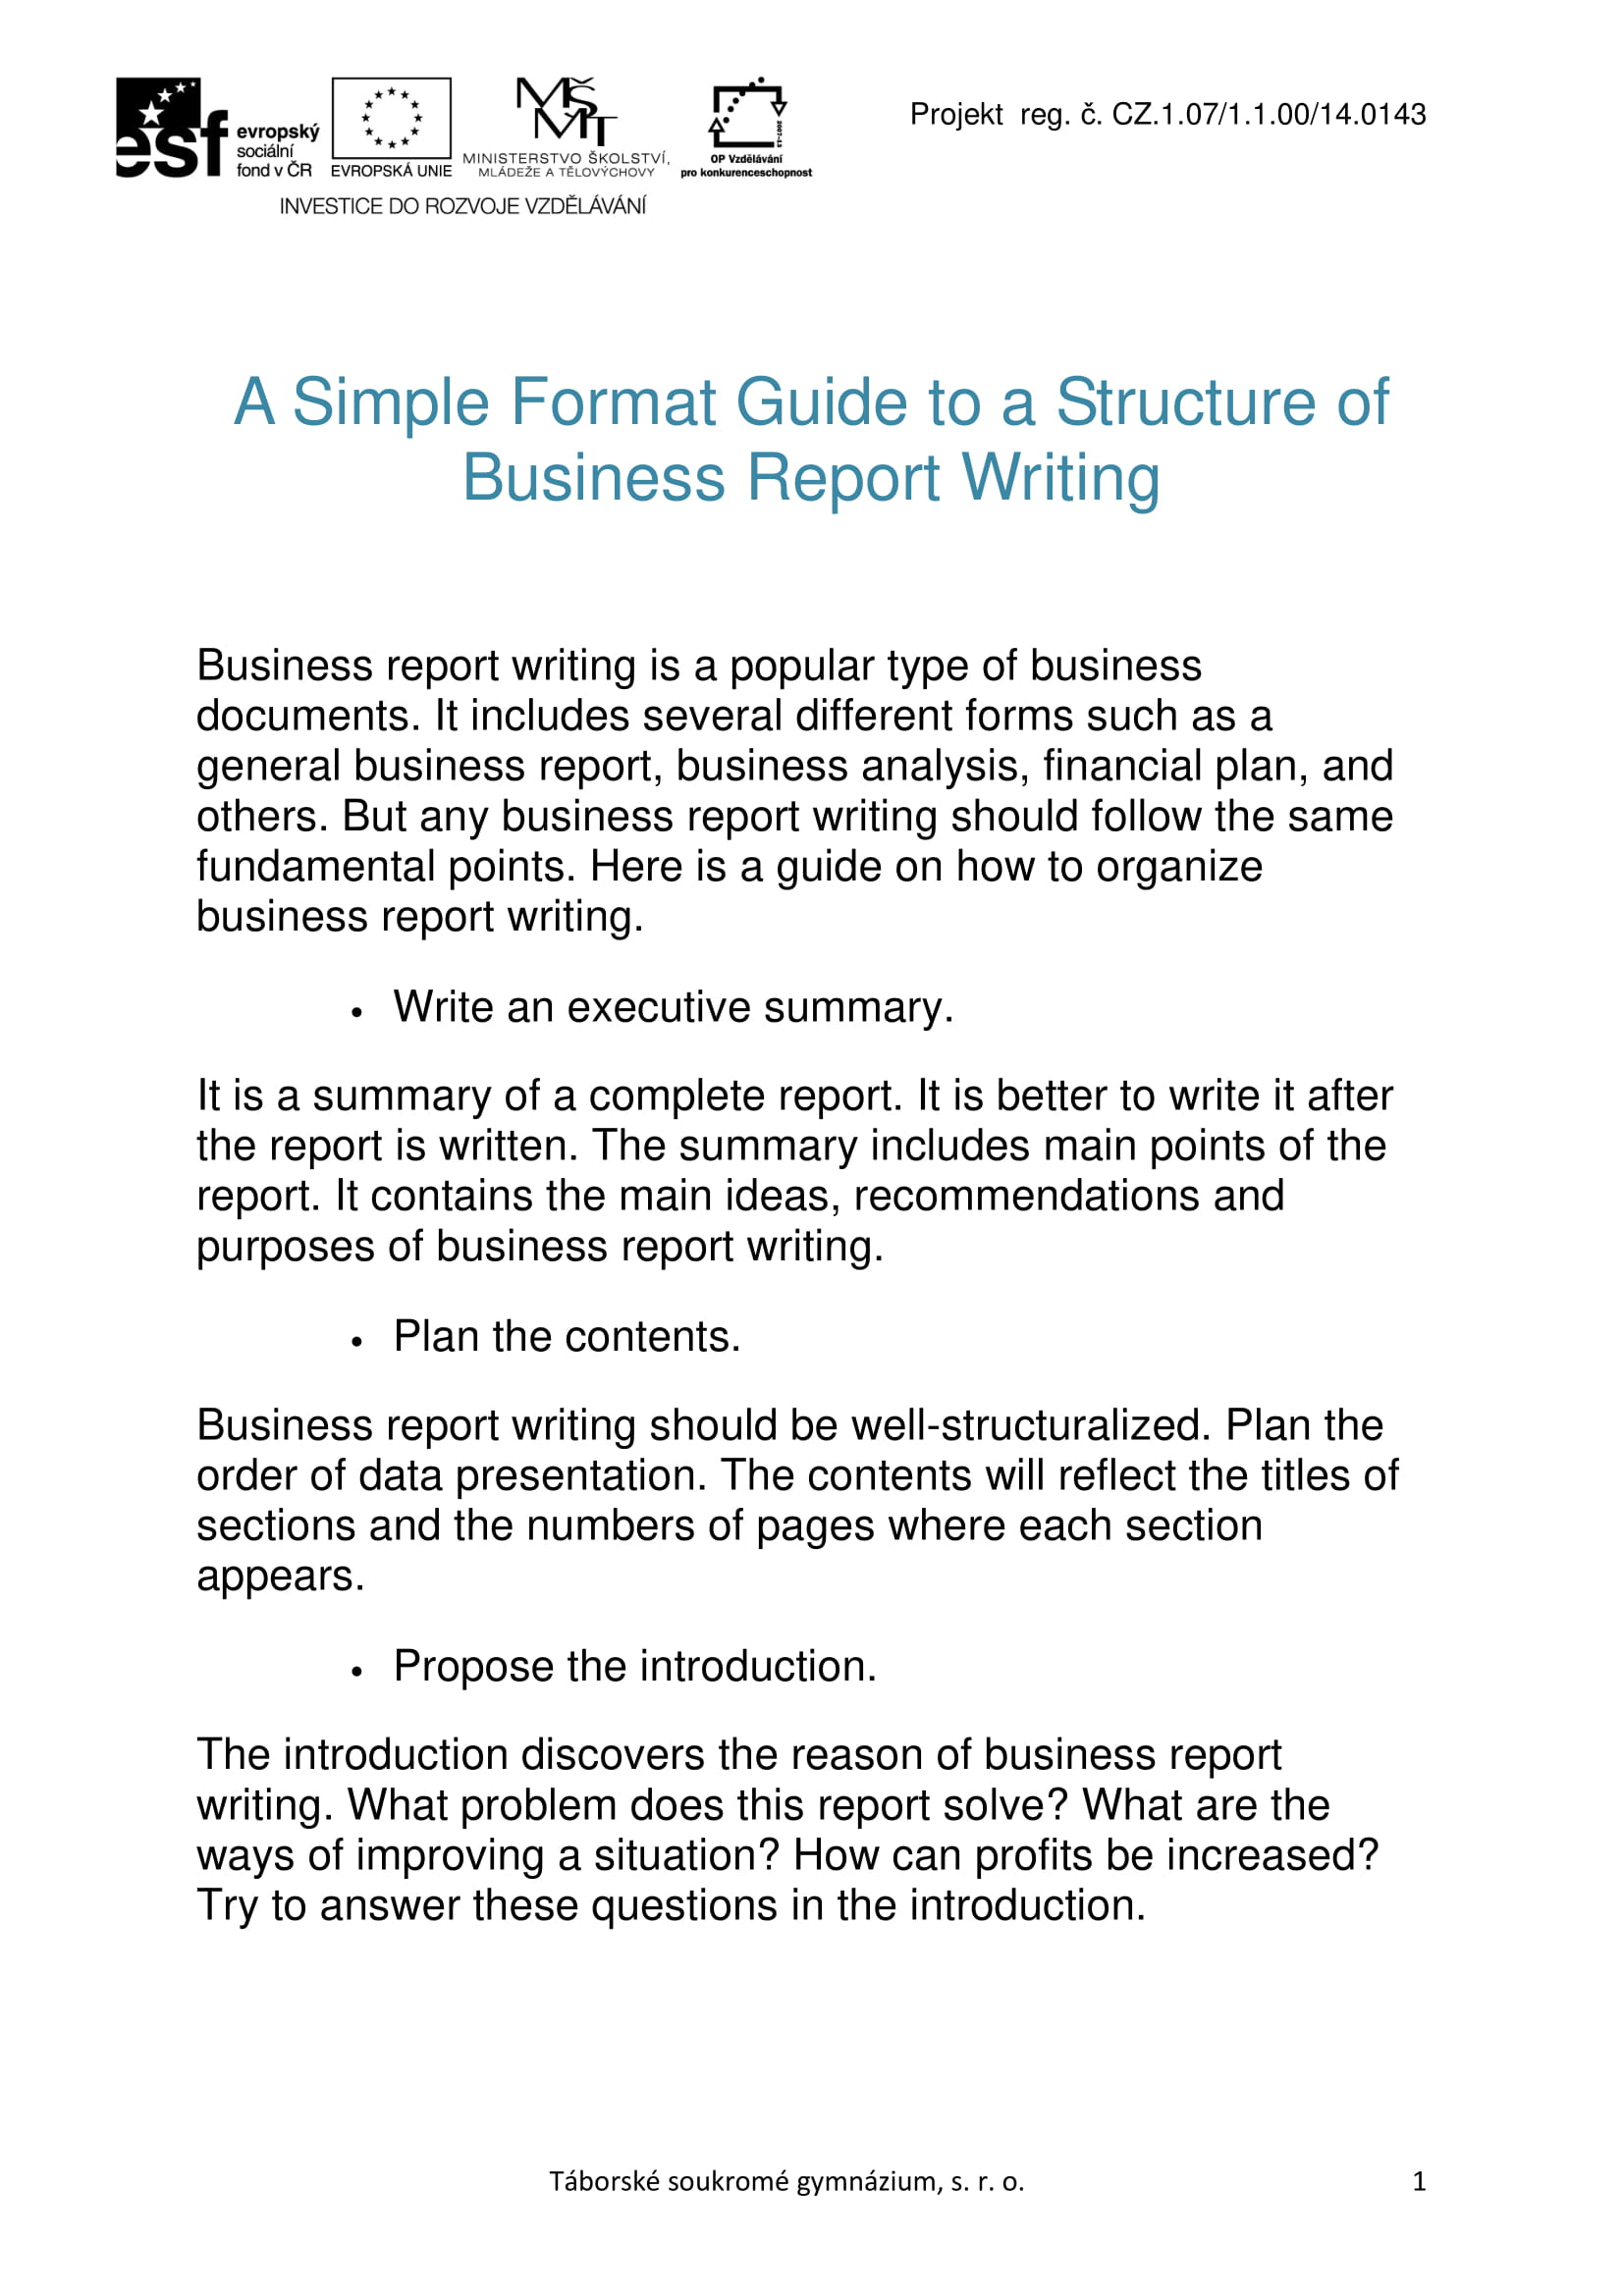 business report format guide example 1